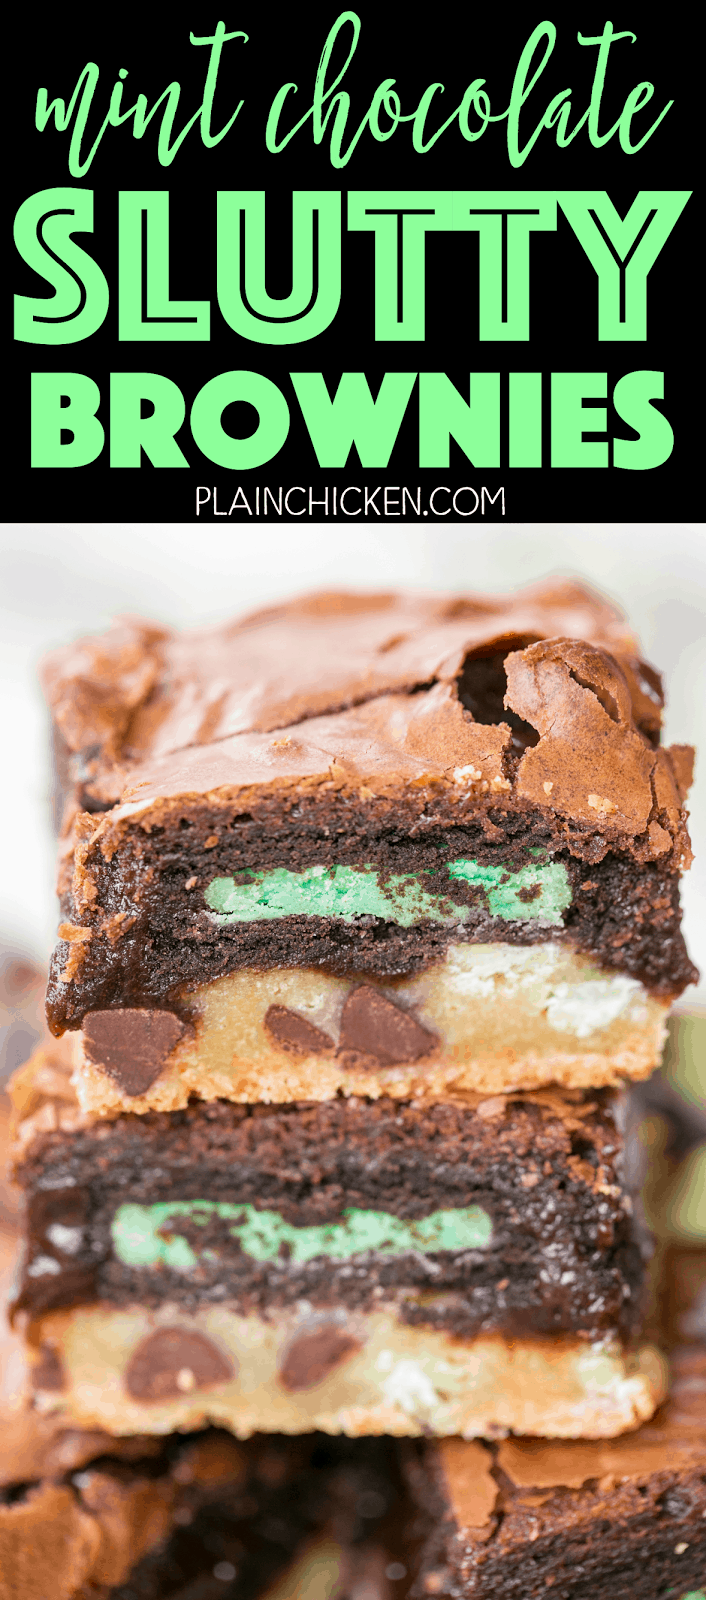 Mint Chocolate Slutty Brownies - seriously delicious! SO easy! Chocolate chip cookie dough topped with mint oreos and mint brownie batter. I could eat the entire pan! Fun treat for St. Patrick's Day!!